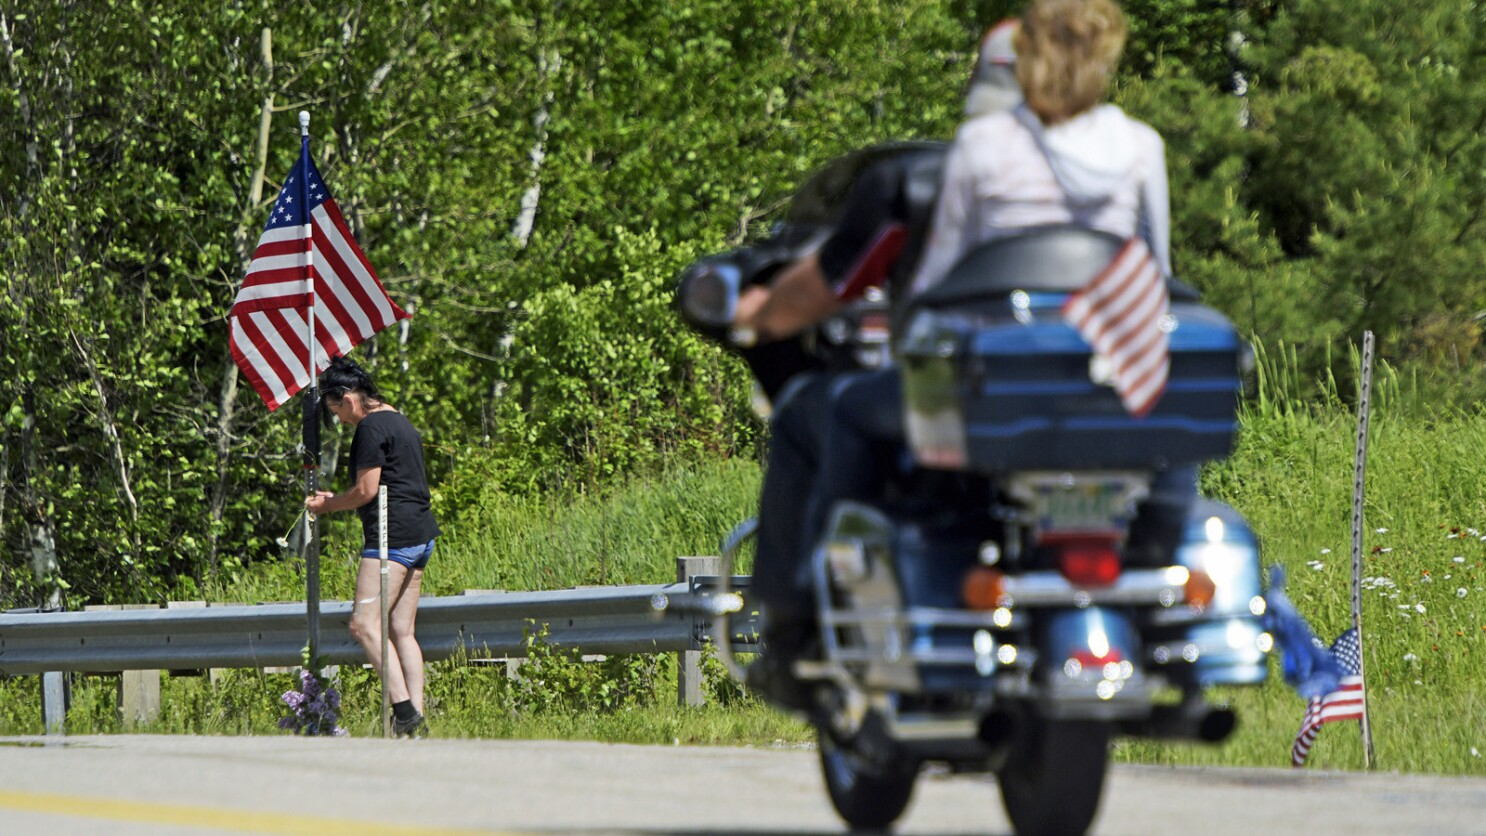 Bikers and military veterans mourn 7 killed in rural New Hampshire